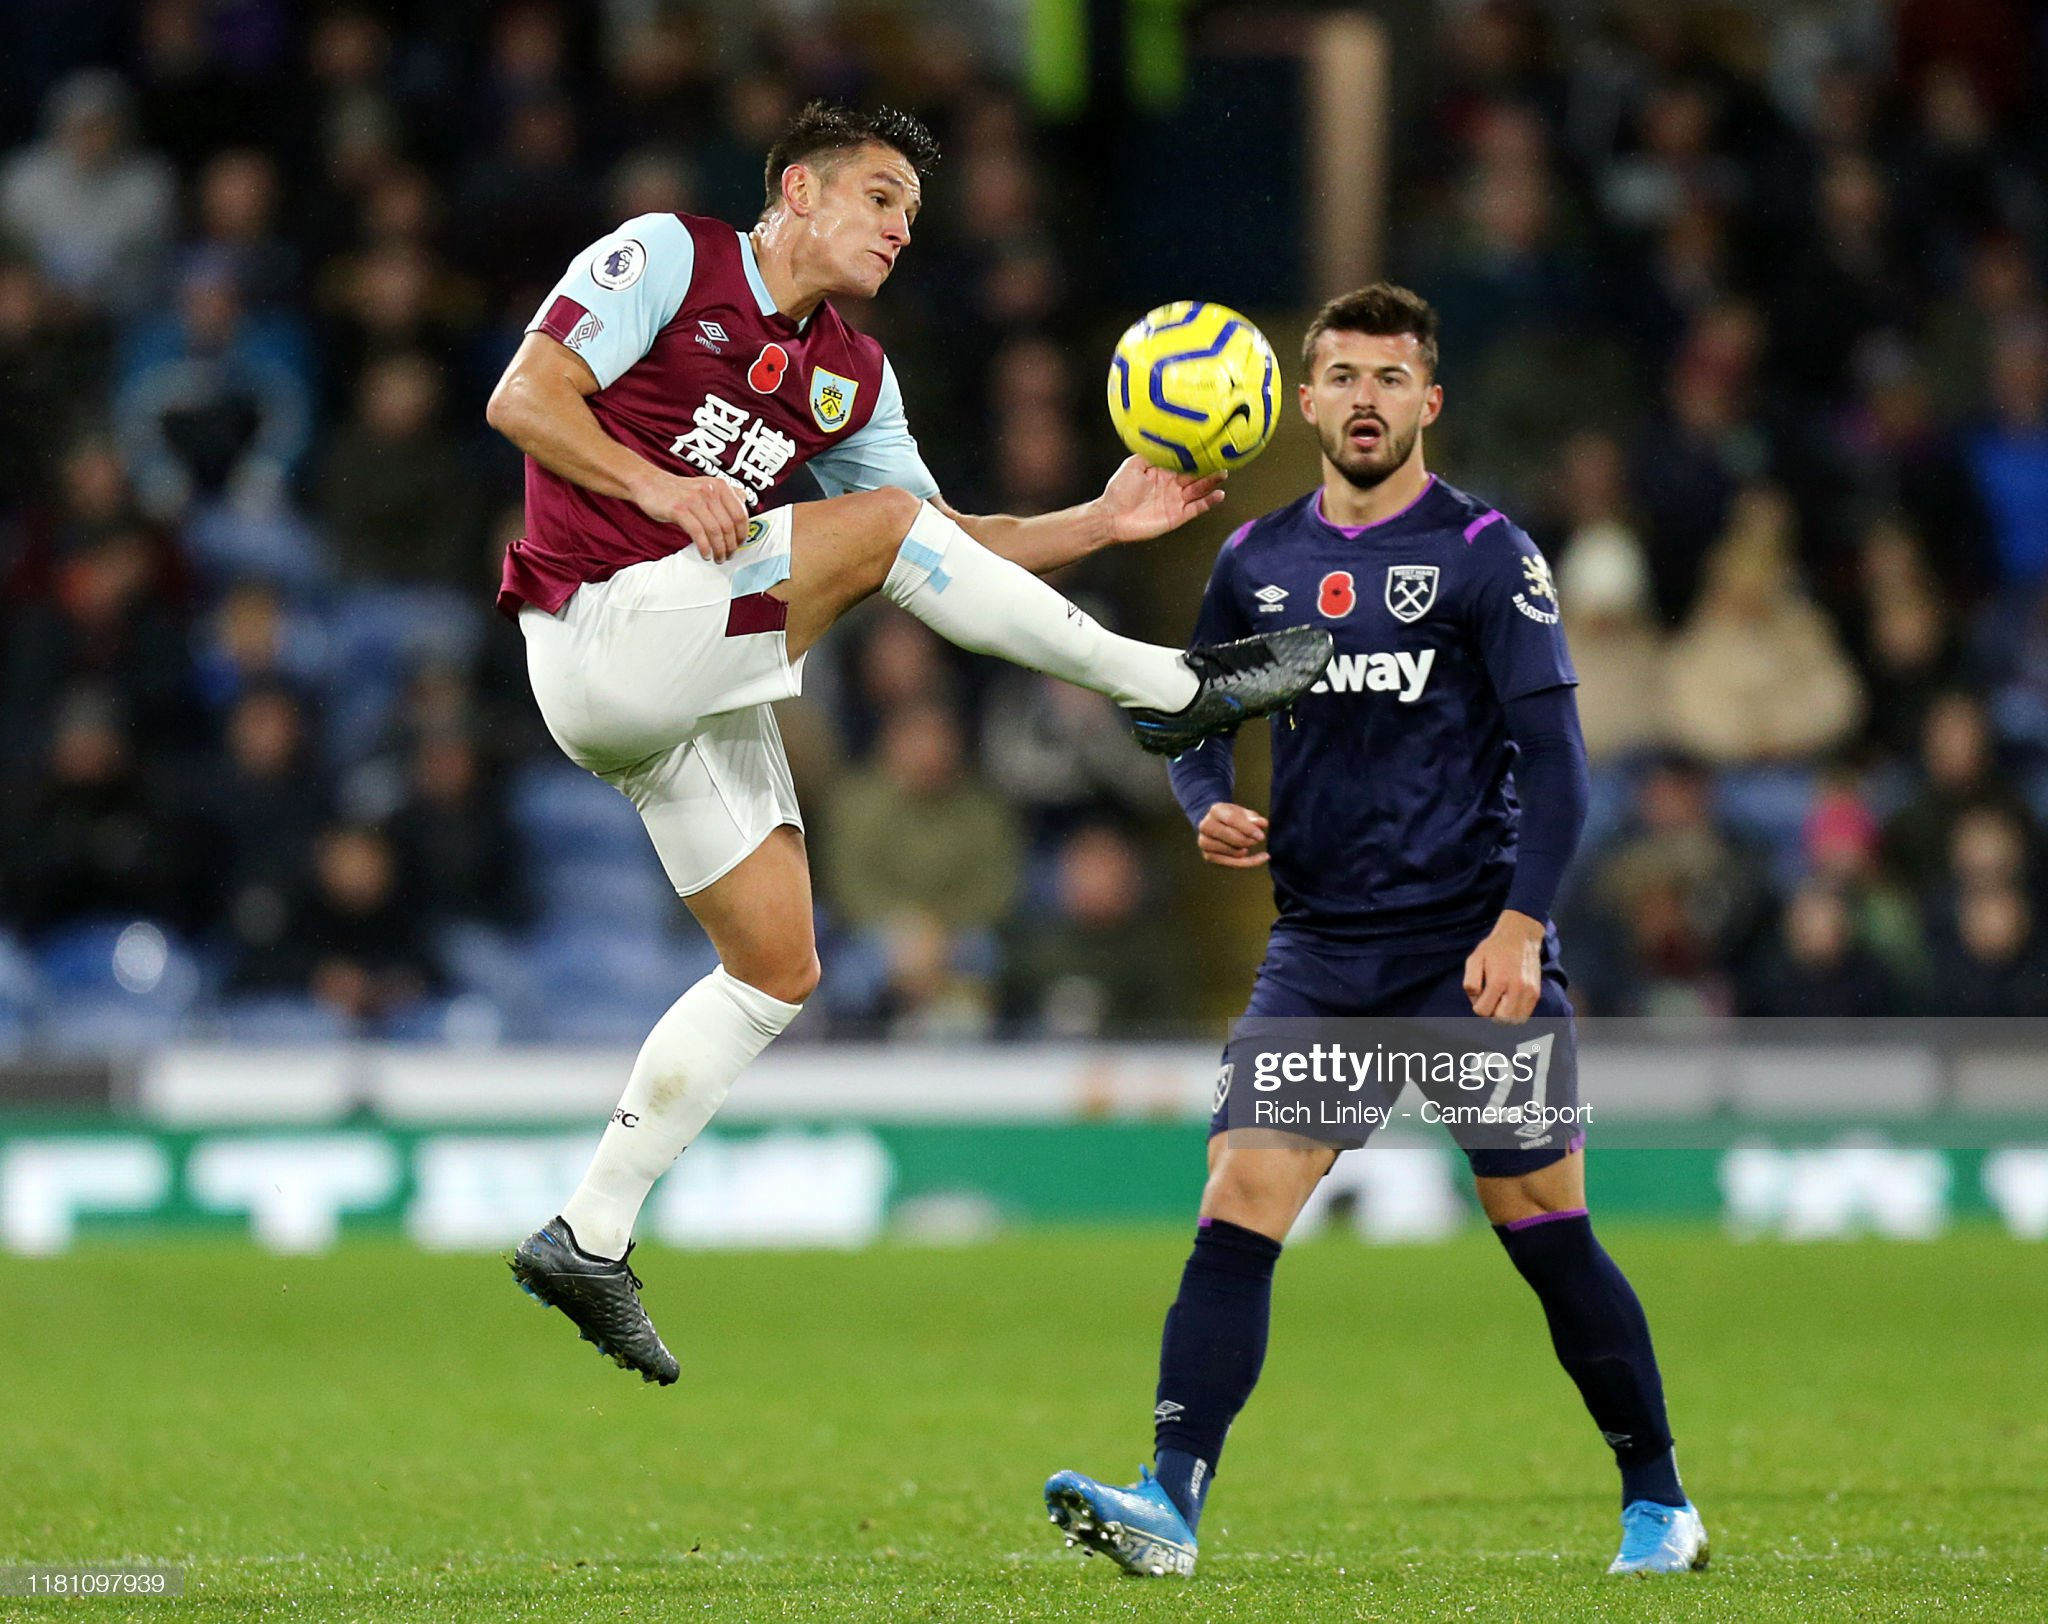 West Ham vs Burnley preview, prediction and odds